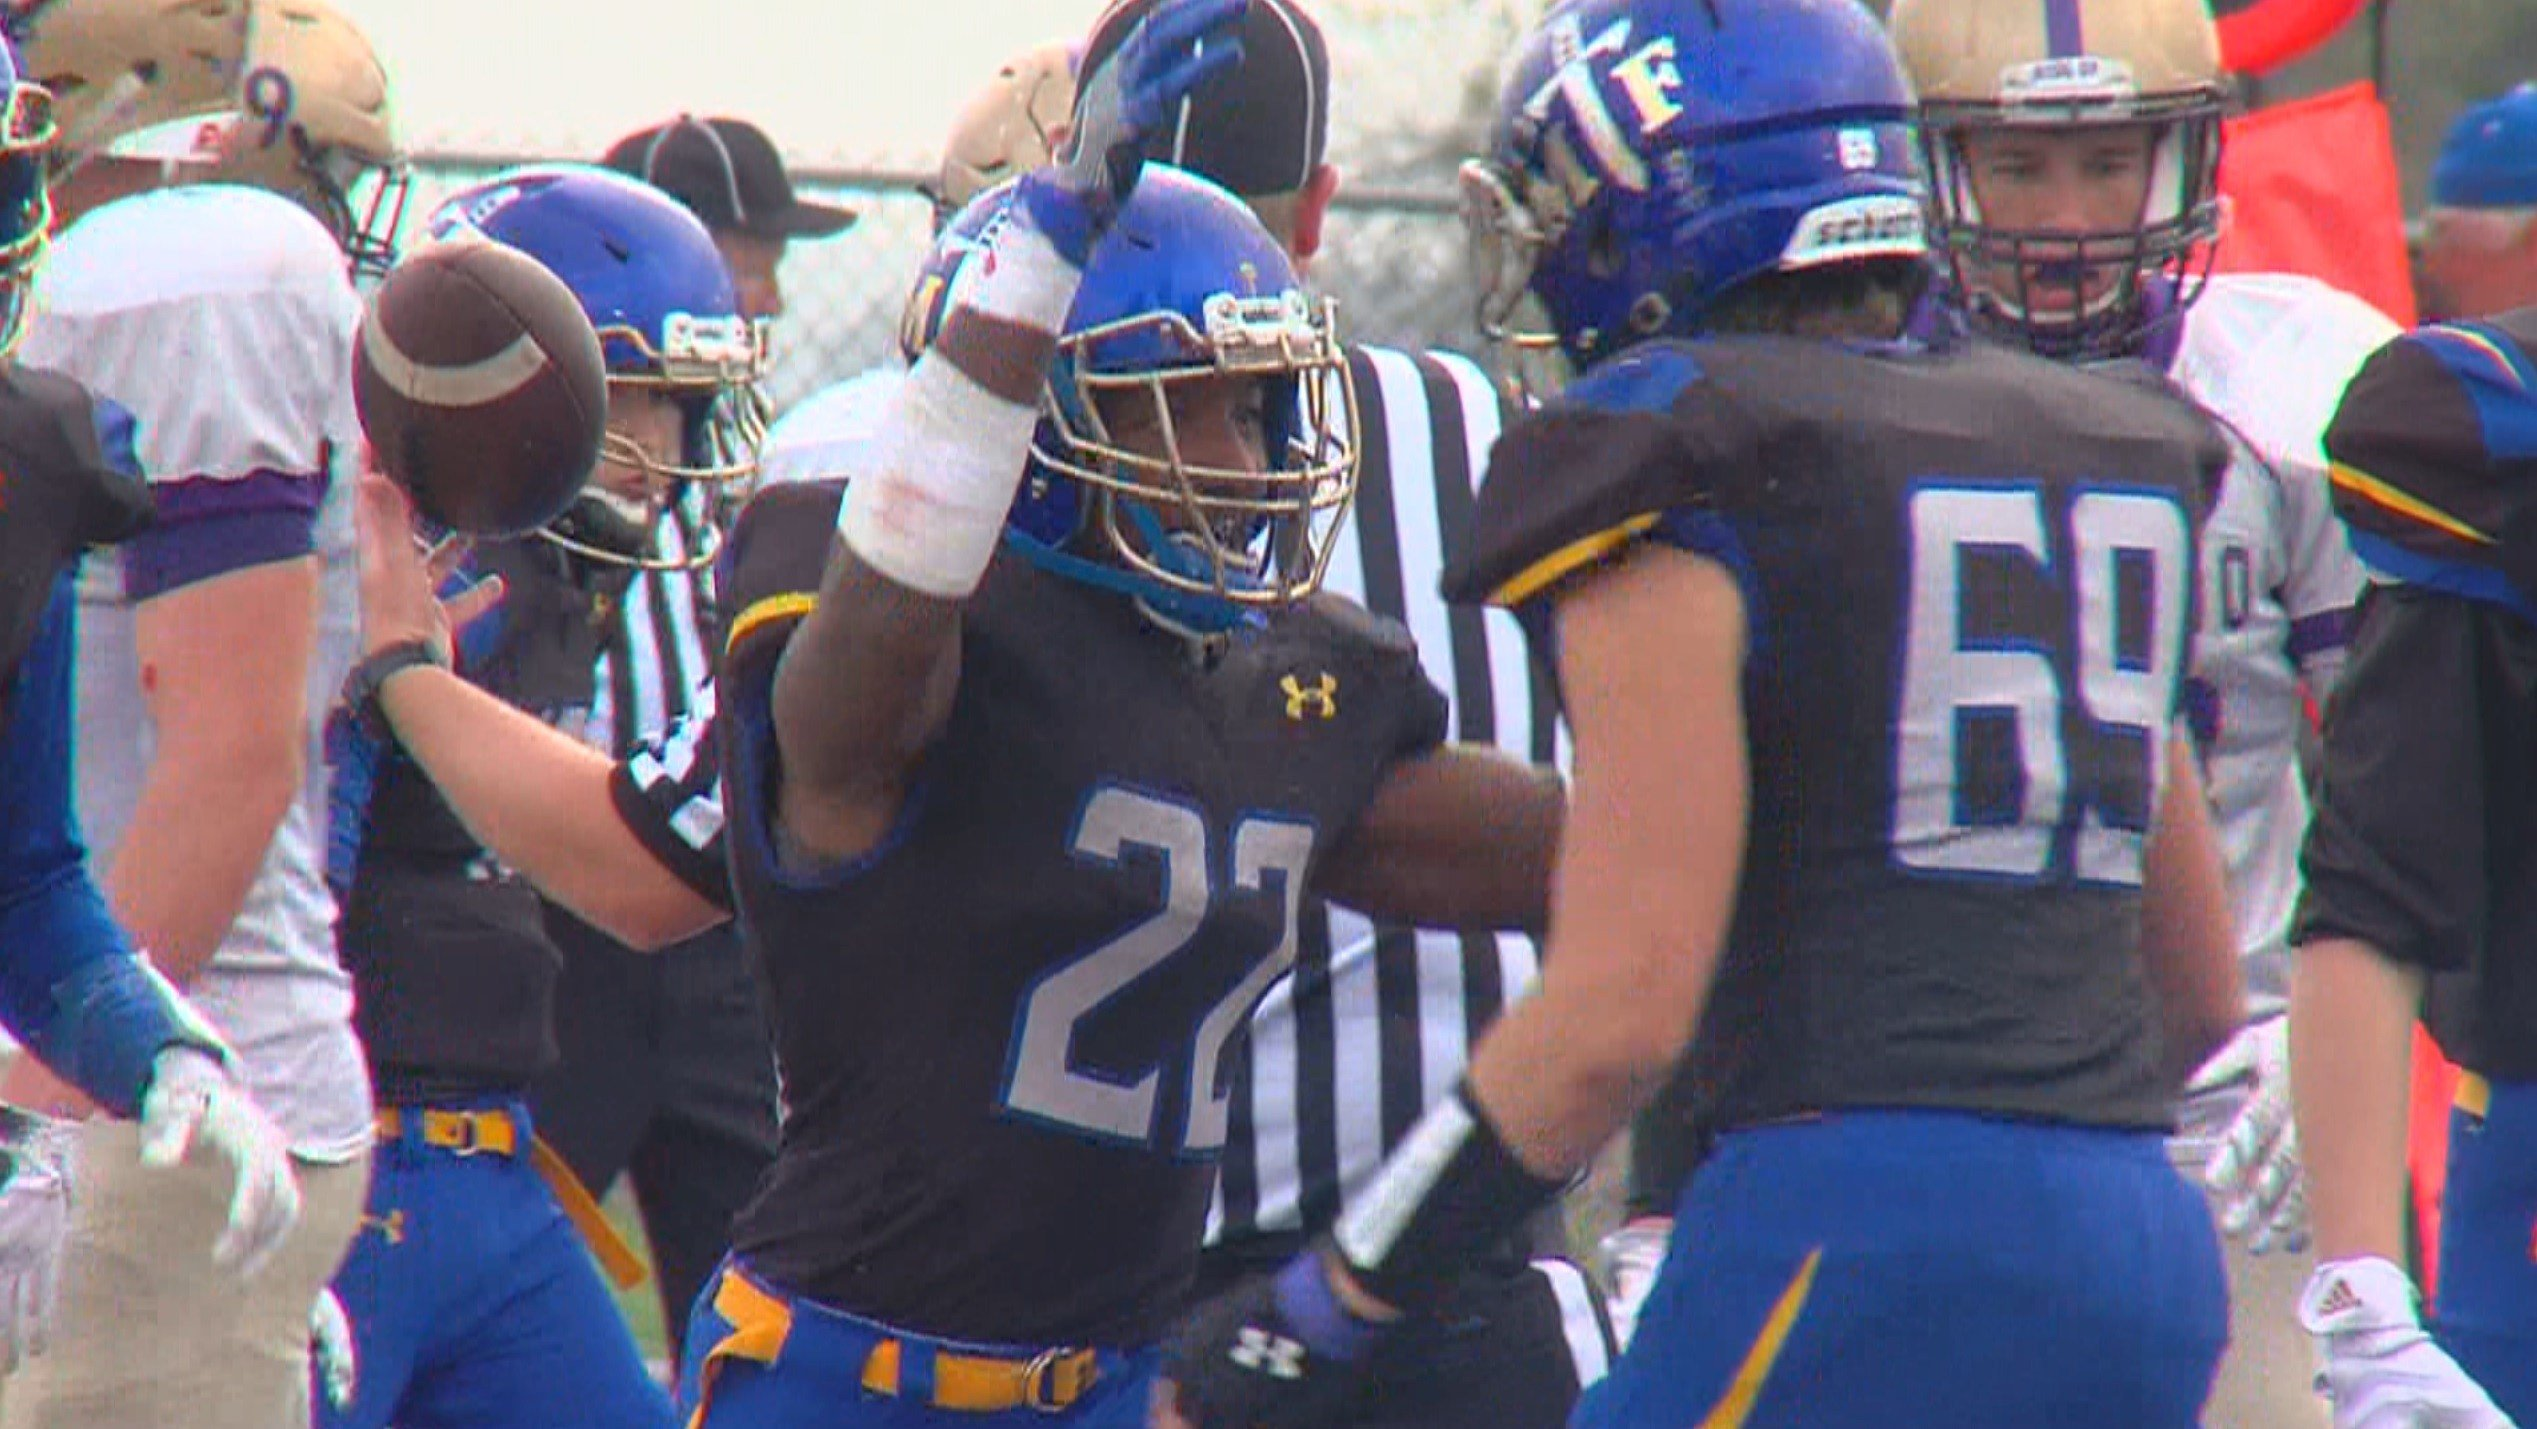 Maroa-Forsyth running back Deondre Gregory scored four touchdowns and the No. 4 seed Trojans rolled No. 5 seed Eldorado 48-6 in the second round of the 2A playoffs Saturday in Maroa.